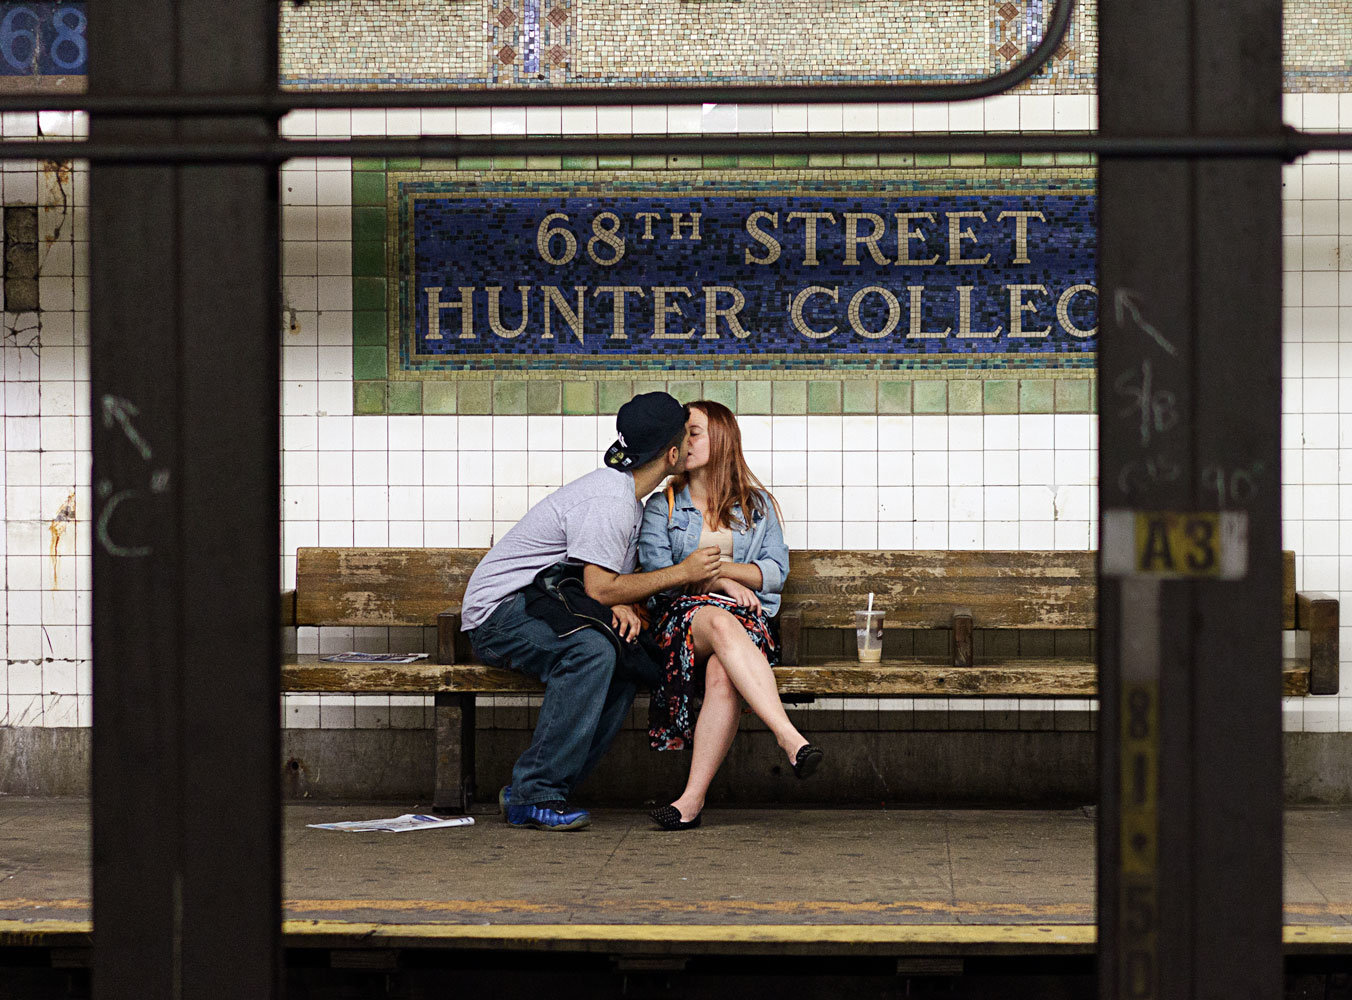 SubwayKiss_DSC4635-as-Smart-Object-1.jpg